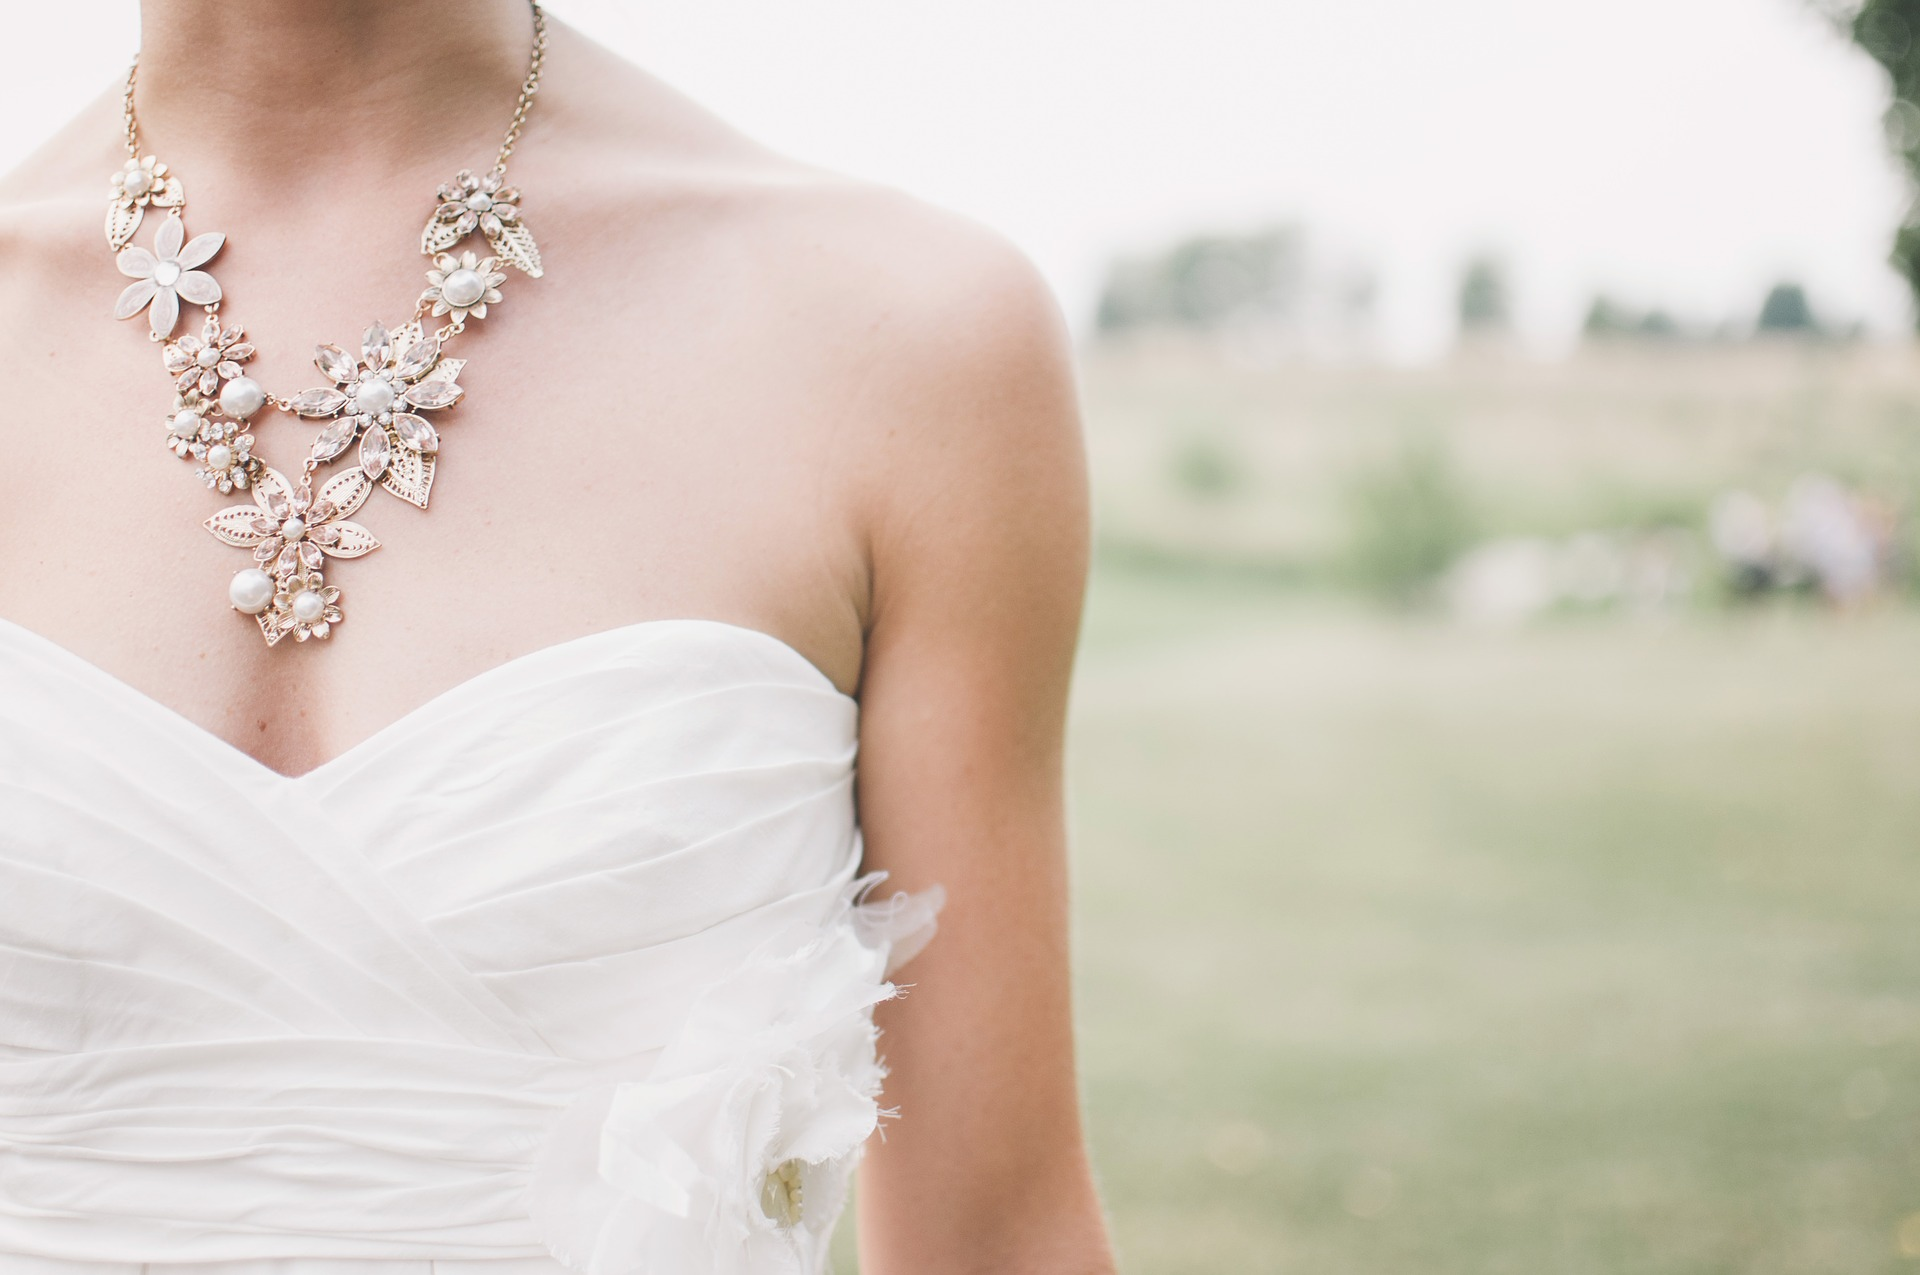 Wedding Trends: Best of Bridal Jewelry